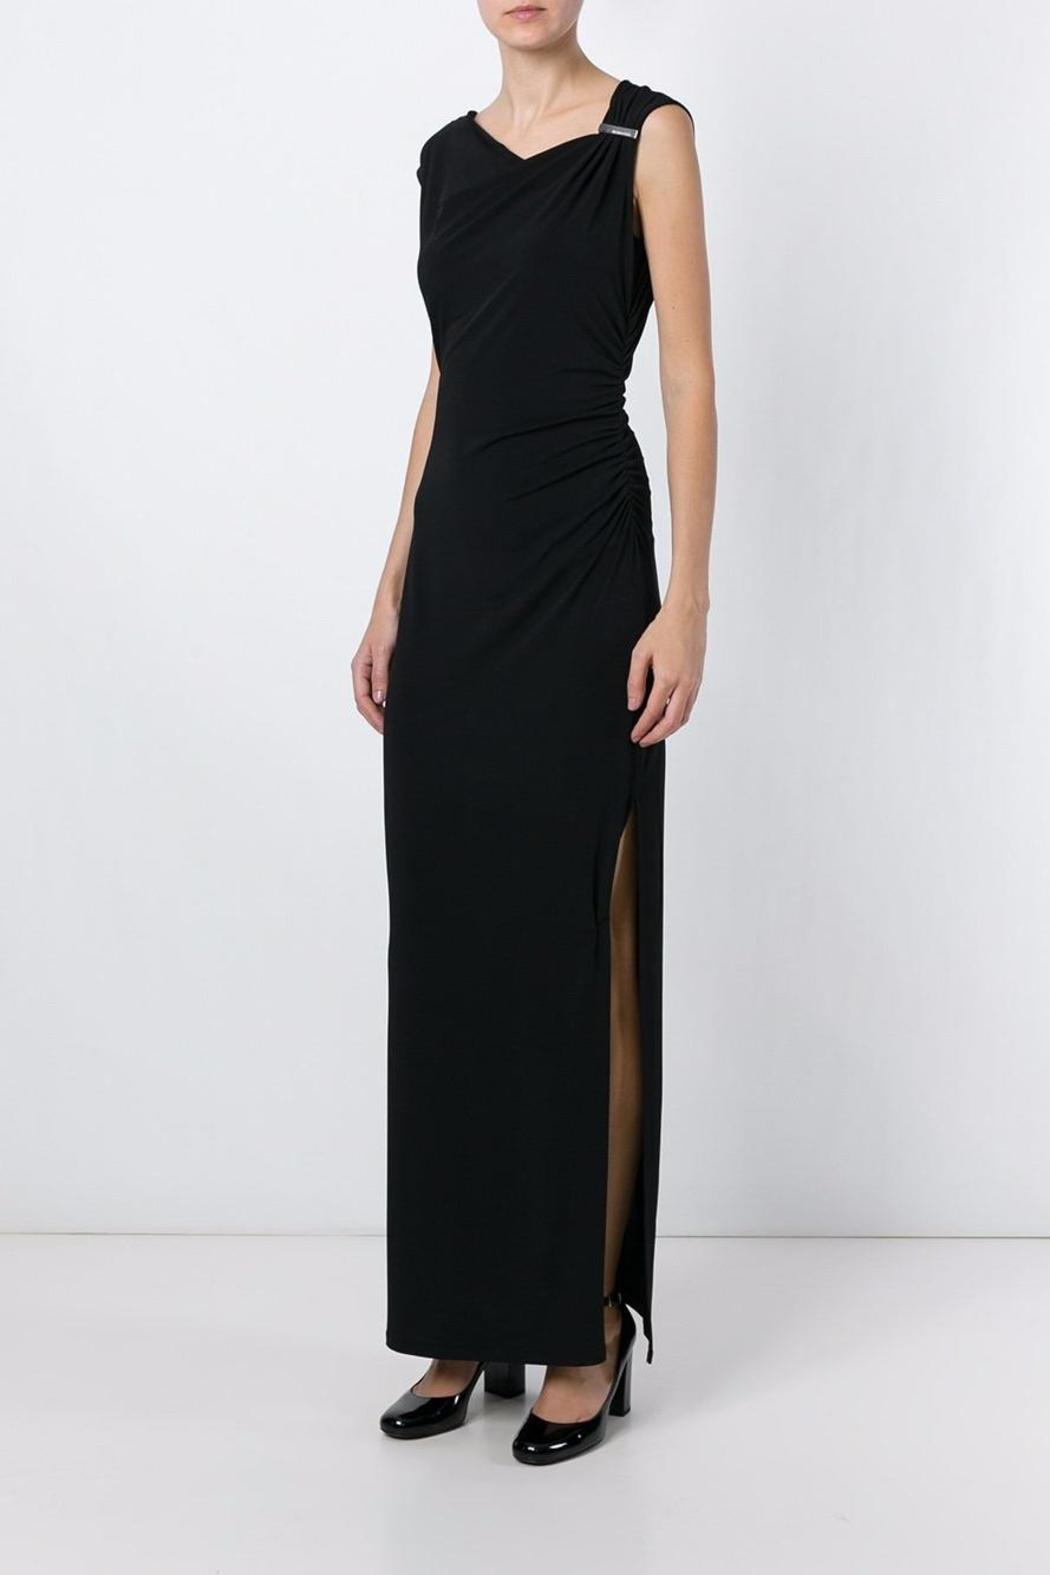 Michael by Michael Kors Side Slit Gown - Side Cropped Image